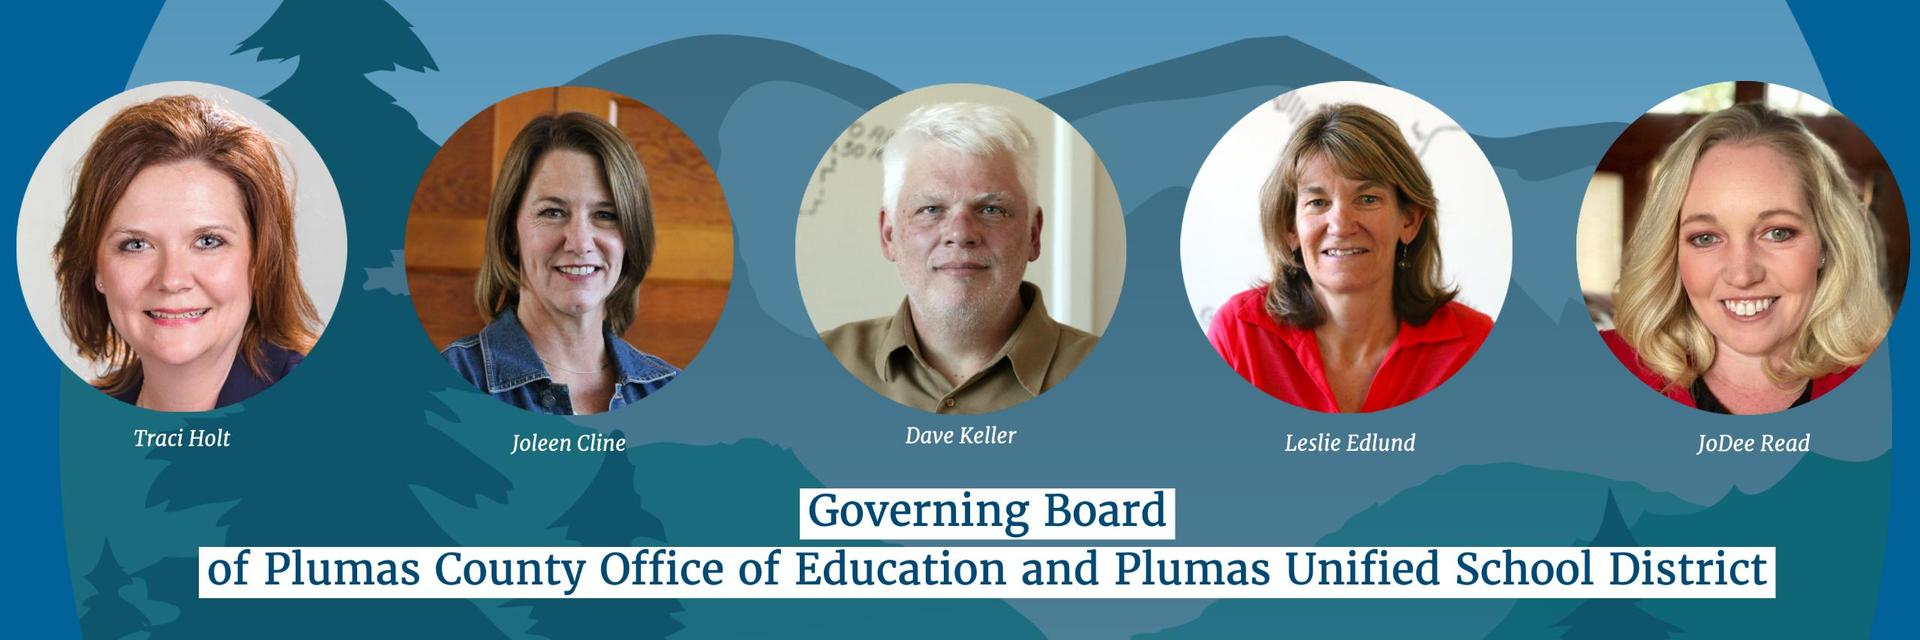 Governing Board PCOE and PUSD